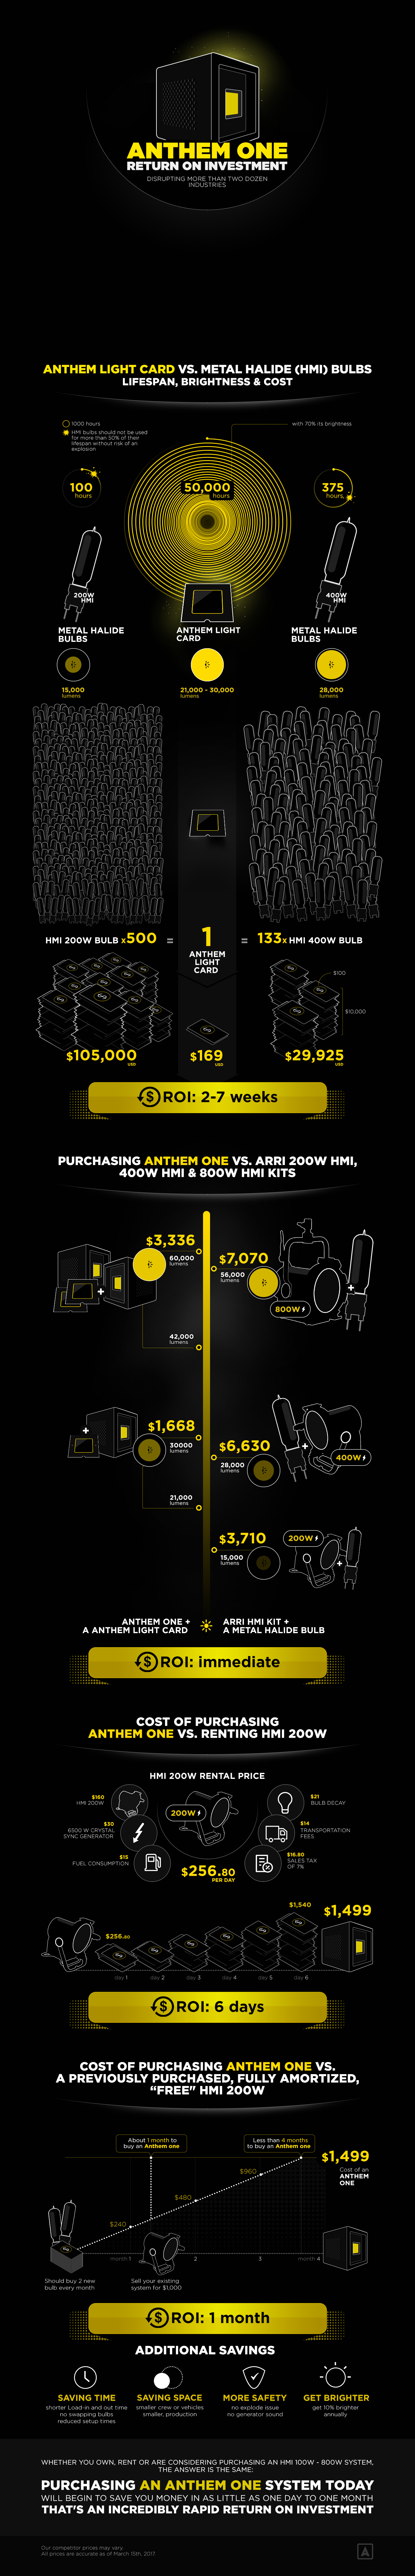 Anthem One Infograph - Return On Investment Visual Comparison